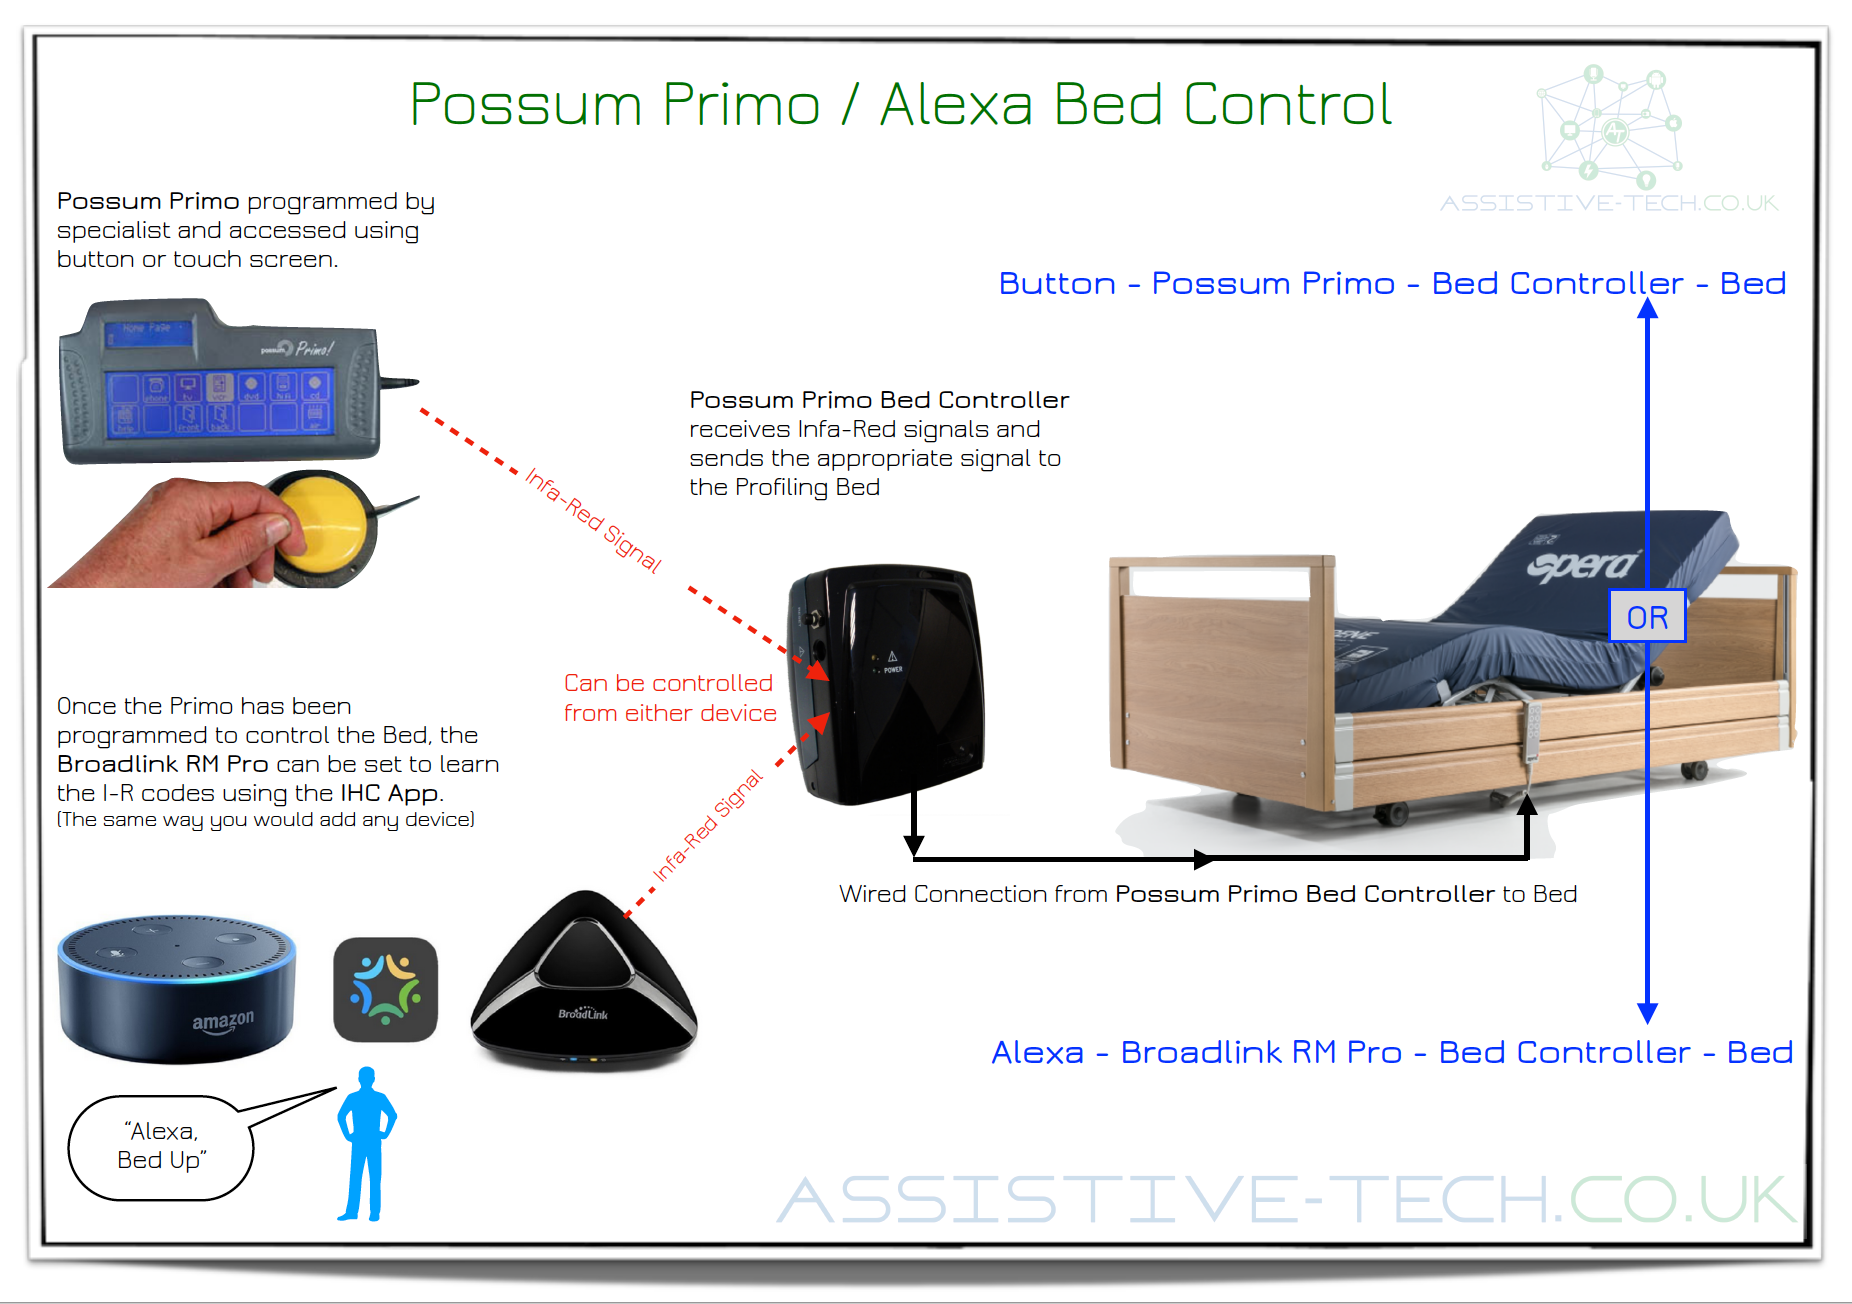 Possum Primo Alexa Bed Control